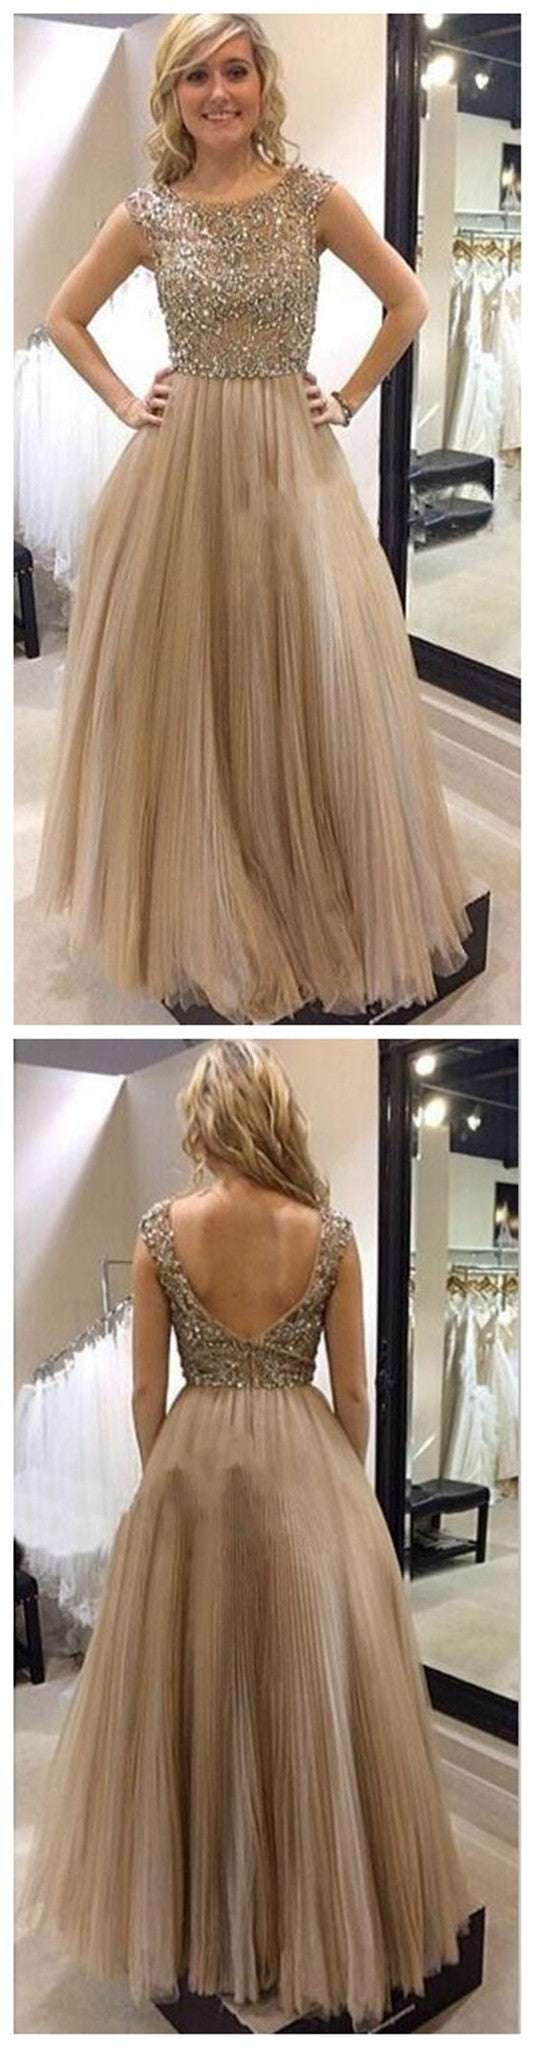 Long A-line Sequins Top Cap Sleeve Open Back Fashion Charming Newest Unique Prom Dresses,PD0135